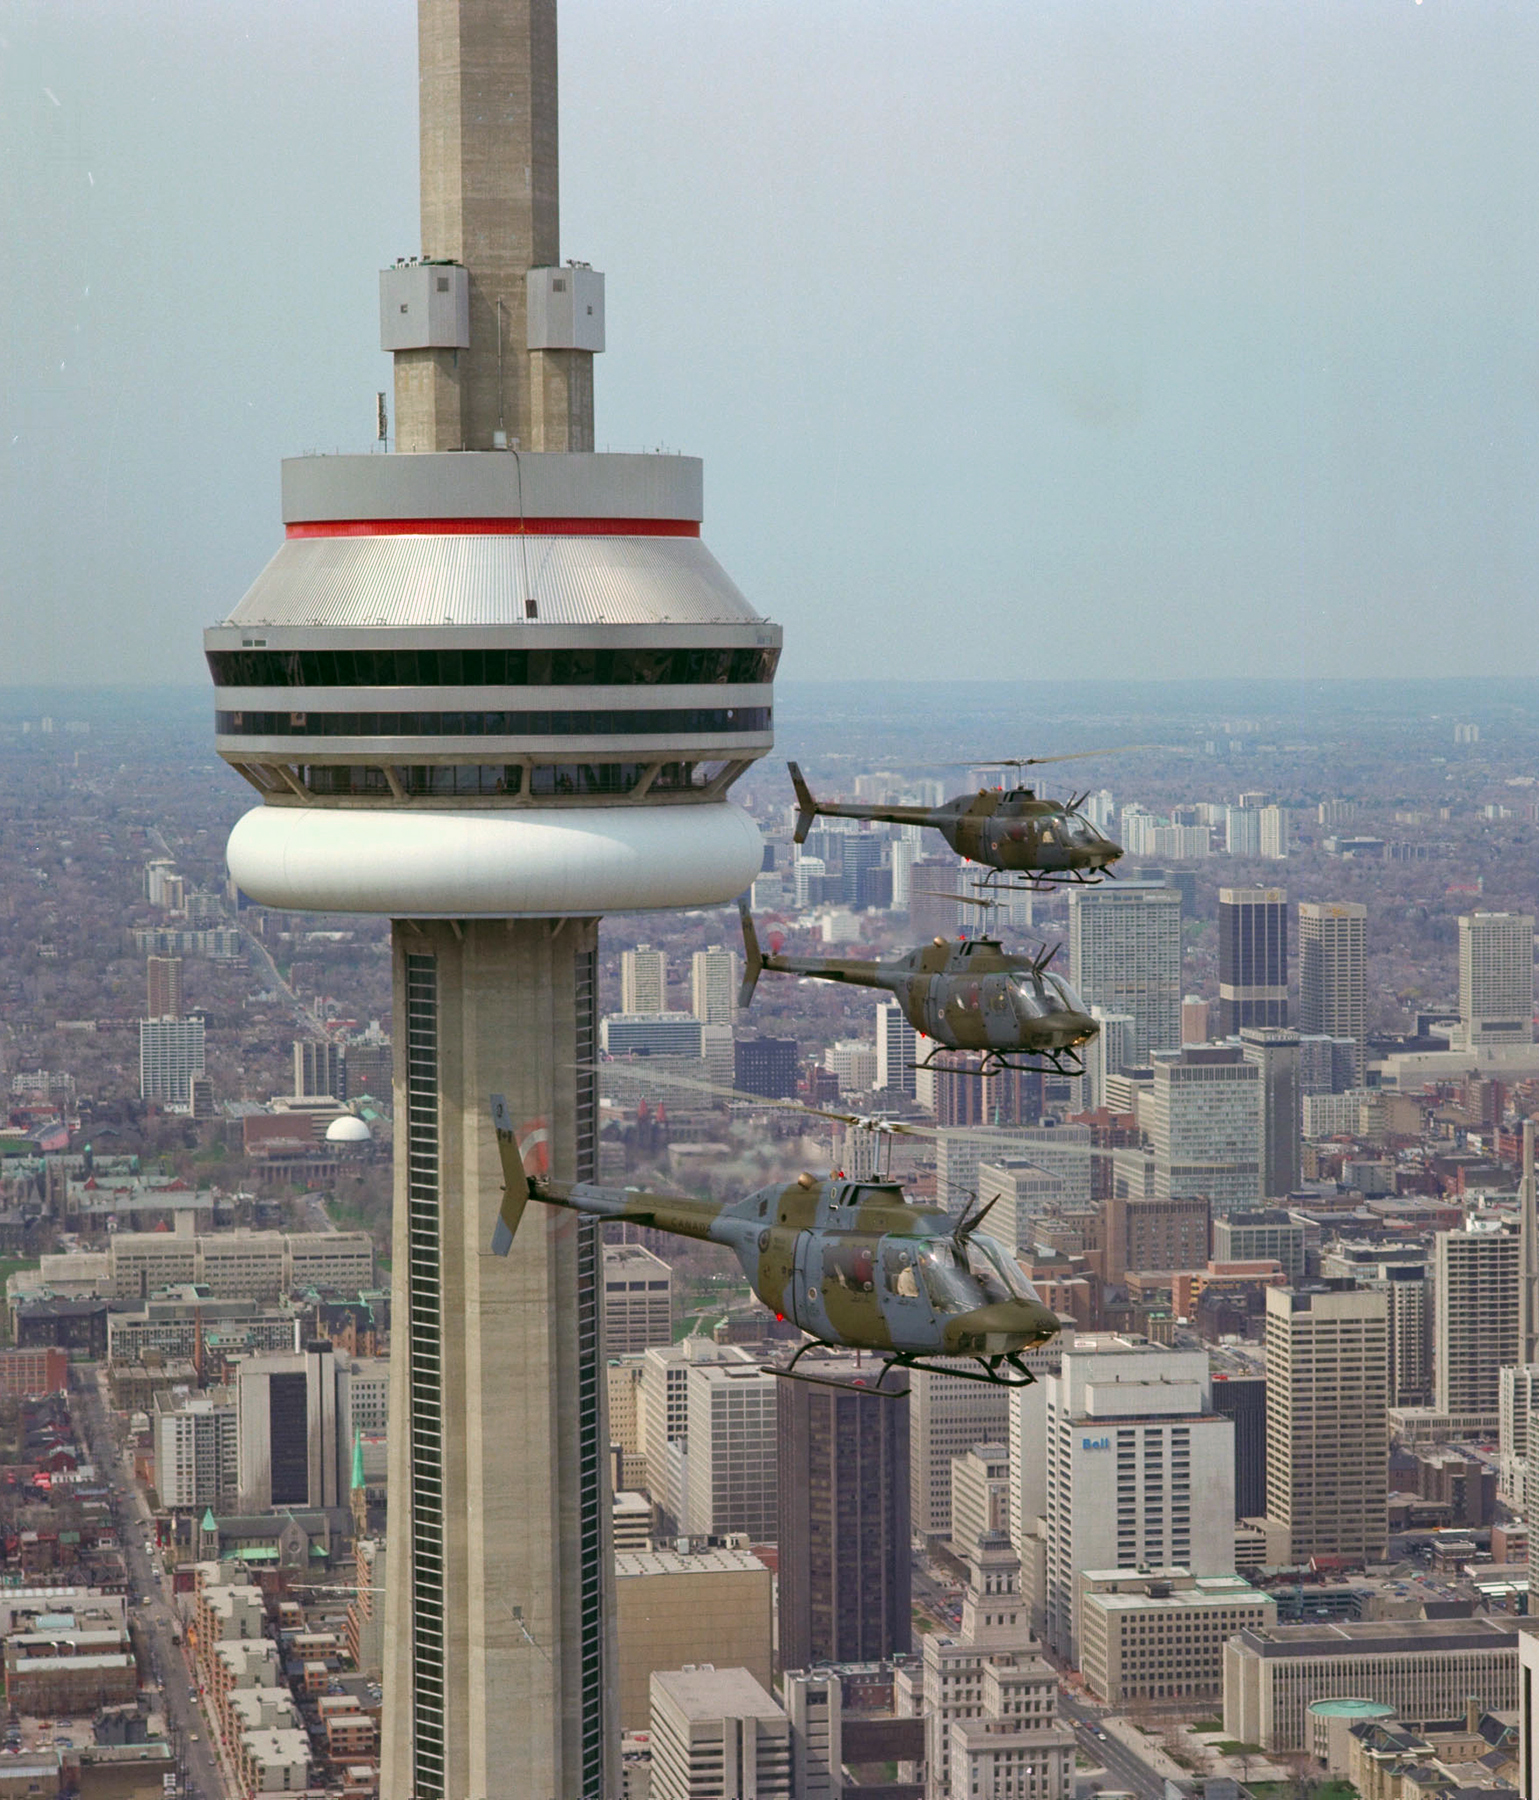 CH-136 Kiowa helicopters from 2 Air Reserve Wing at Canadian Forces Base Toronto fly past the CN Tower on April 28, 1983. PHOTO: Warrant Officer Vic Johnson, DND Archives, IOC83-165